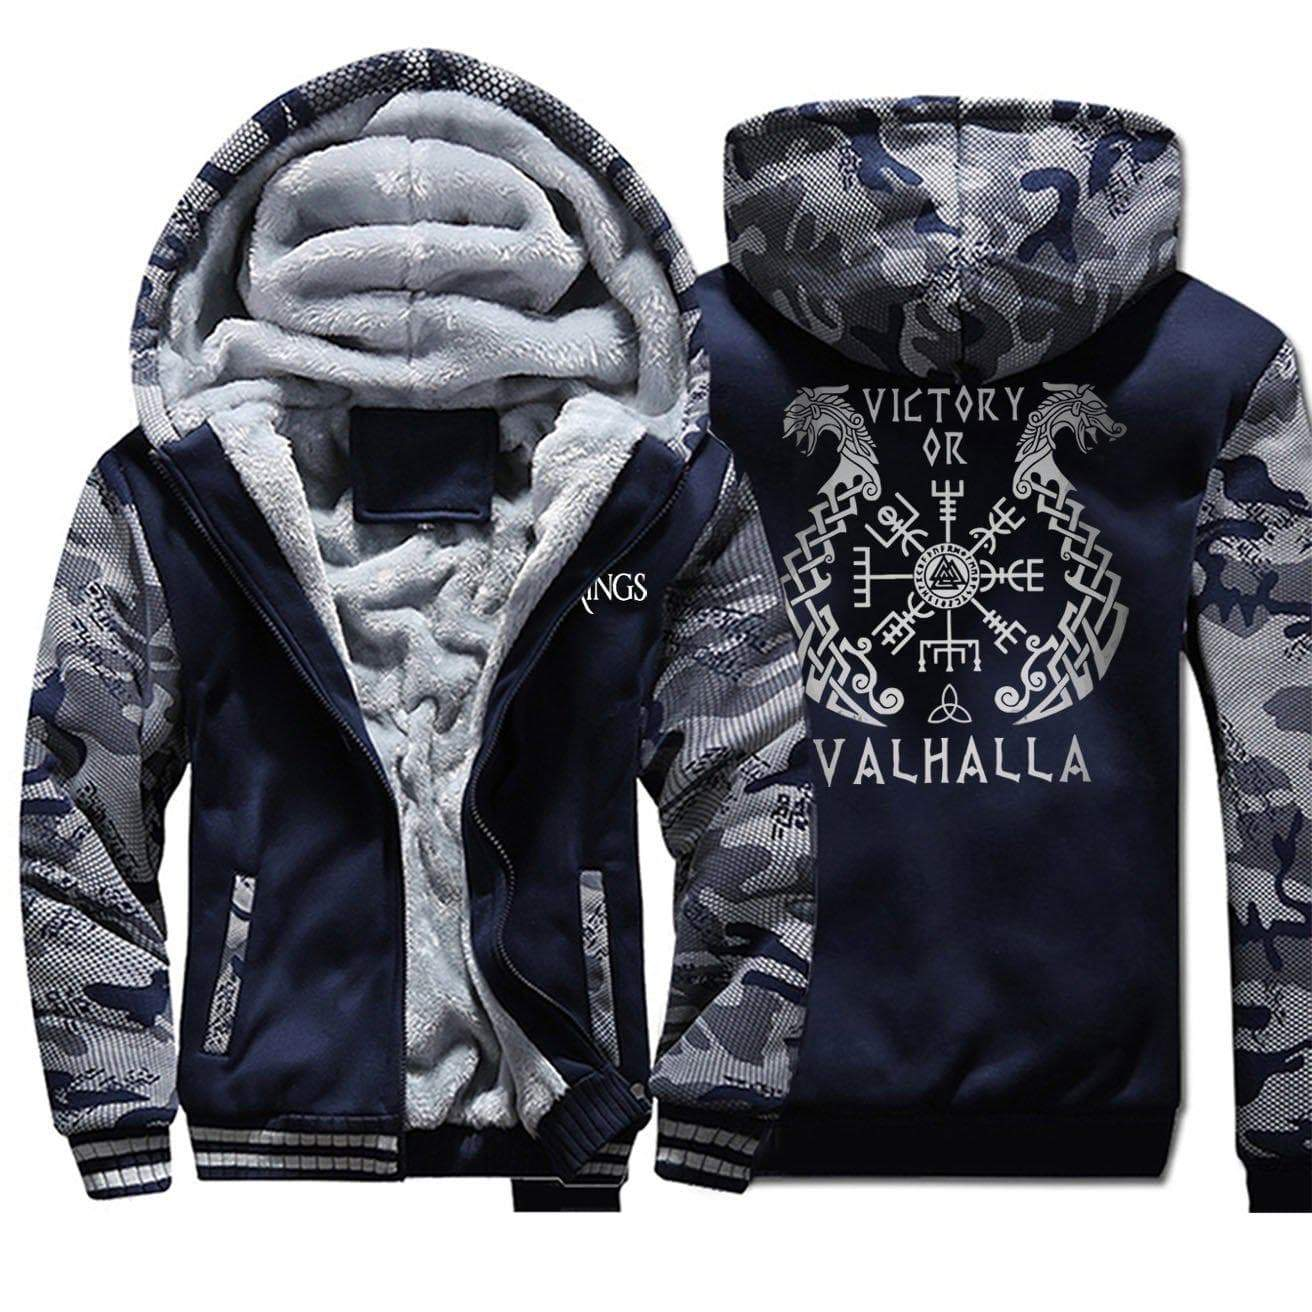 Hoodie Victory of Valhalla Vikings Hoodie Ancient Treasures Ancientreasures Viking Odin Thor Mjolnir Celtic Ancient Egypt Norse Norse Mythology